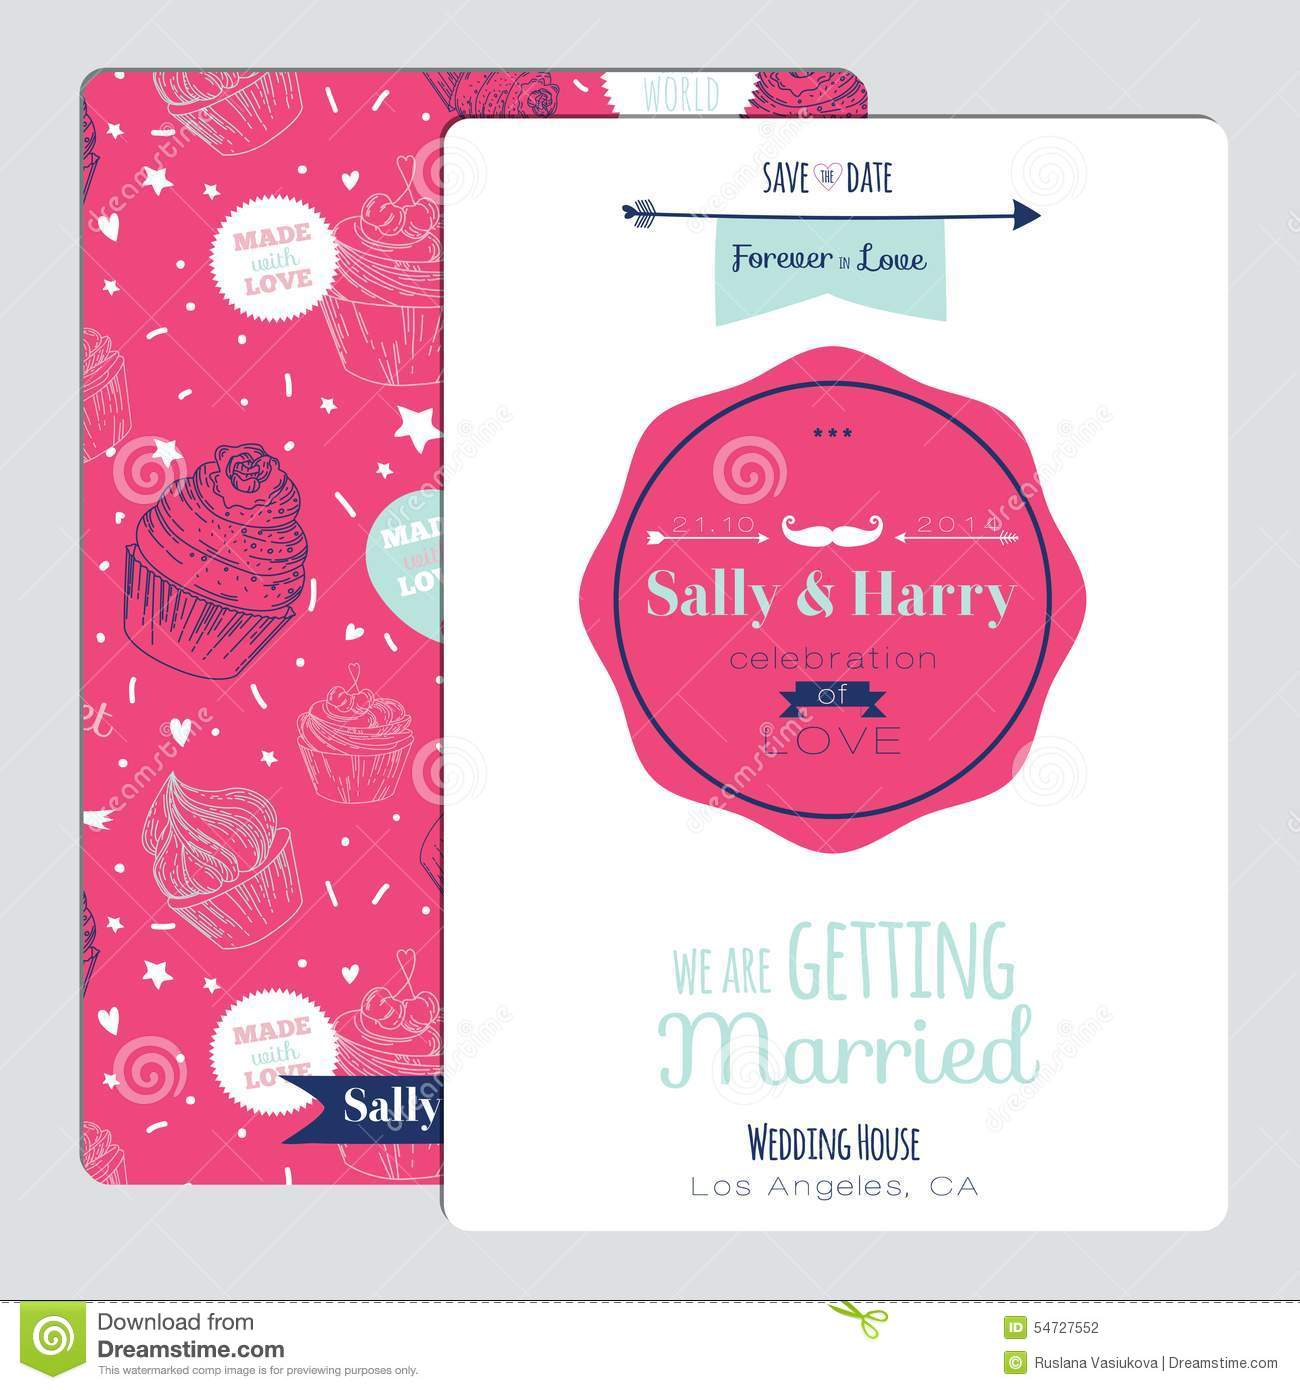 Wedding romantic floral save the date invitation stock vector wedding romantic floral save the date invitation flower label stopboris Image collections